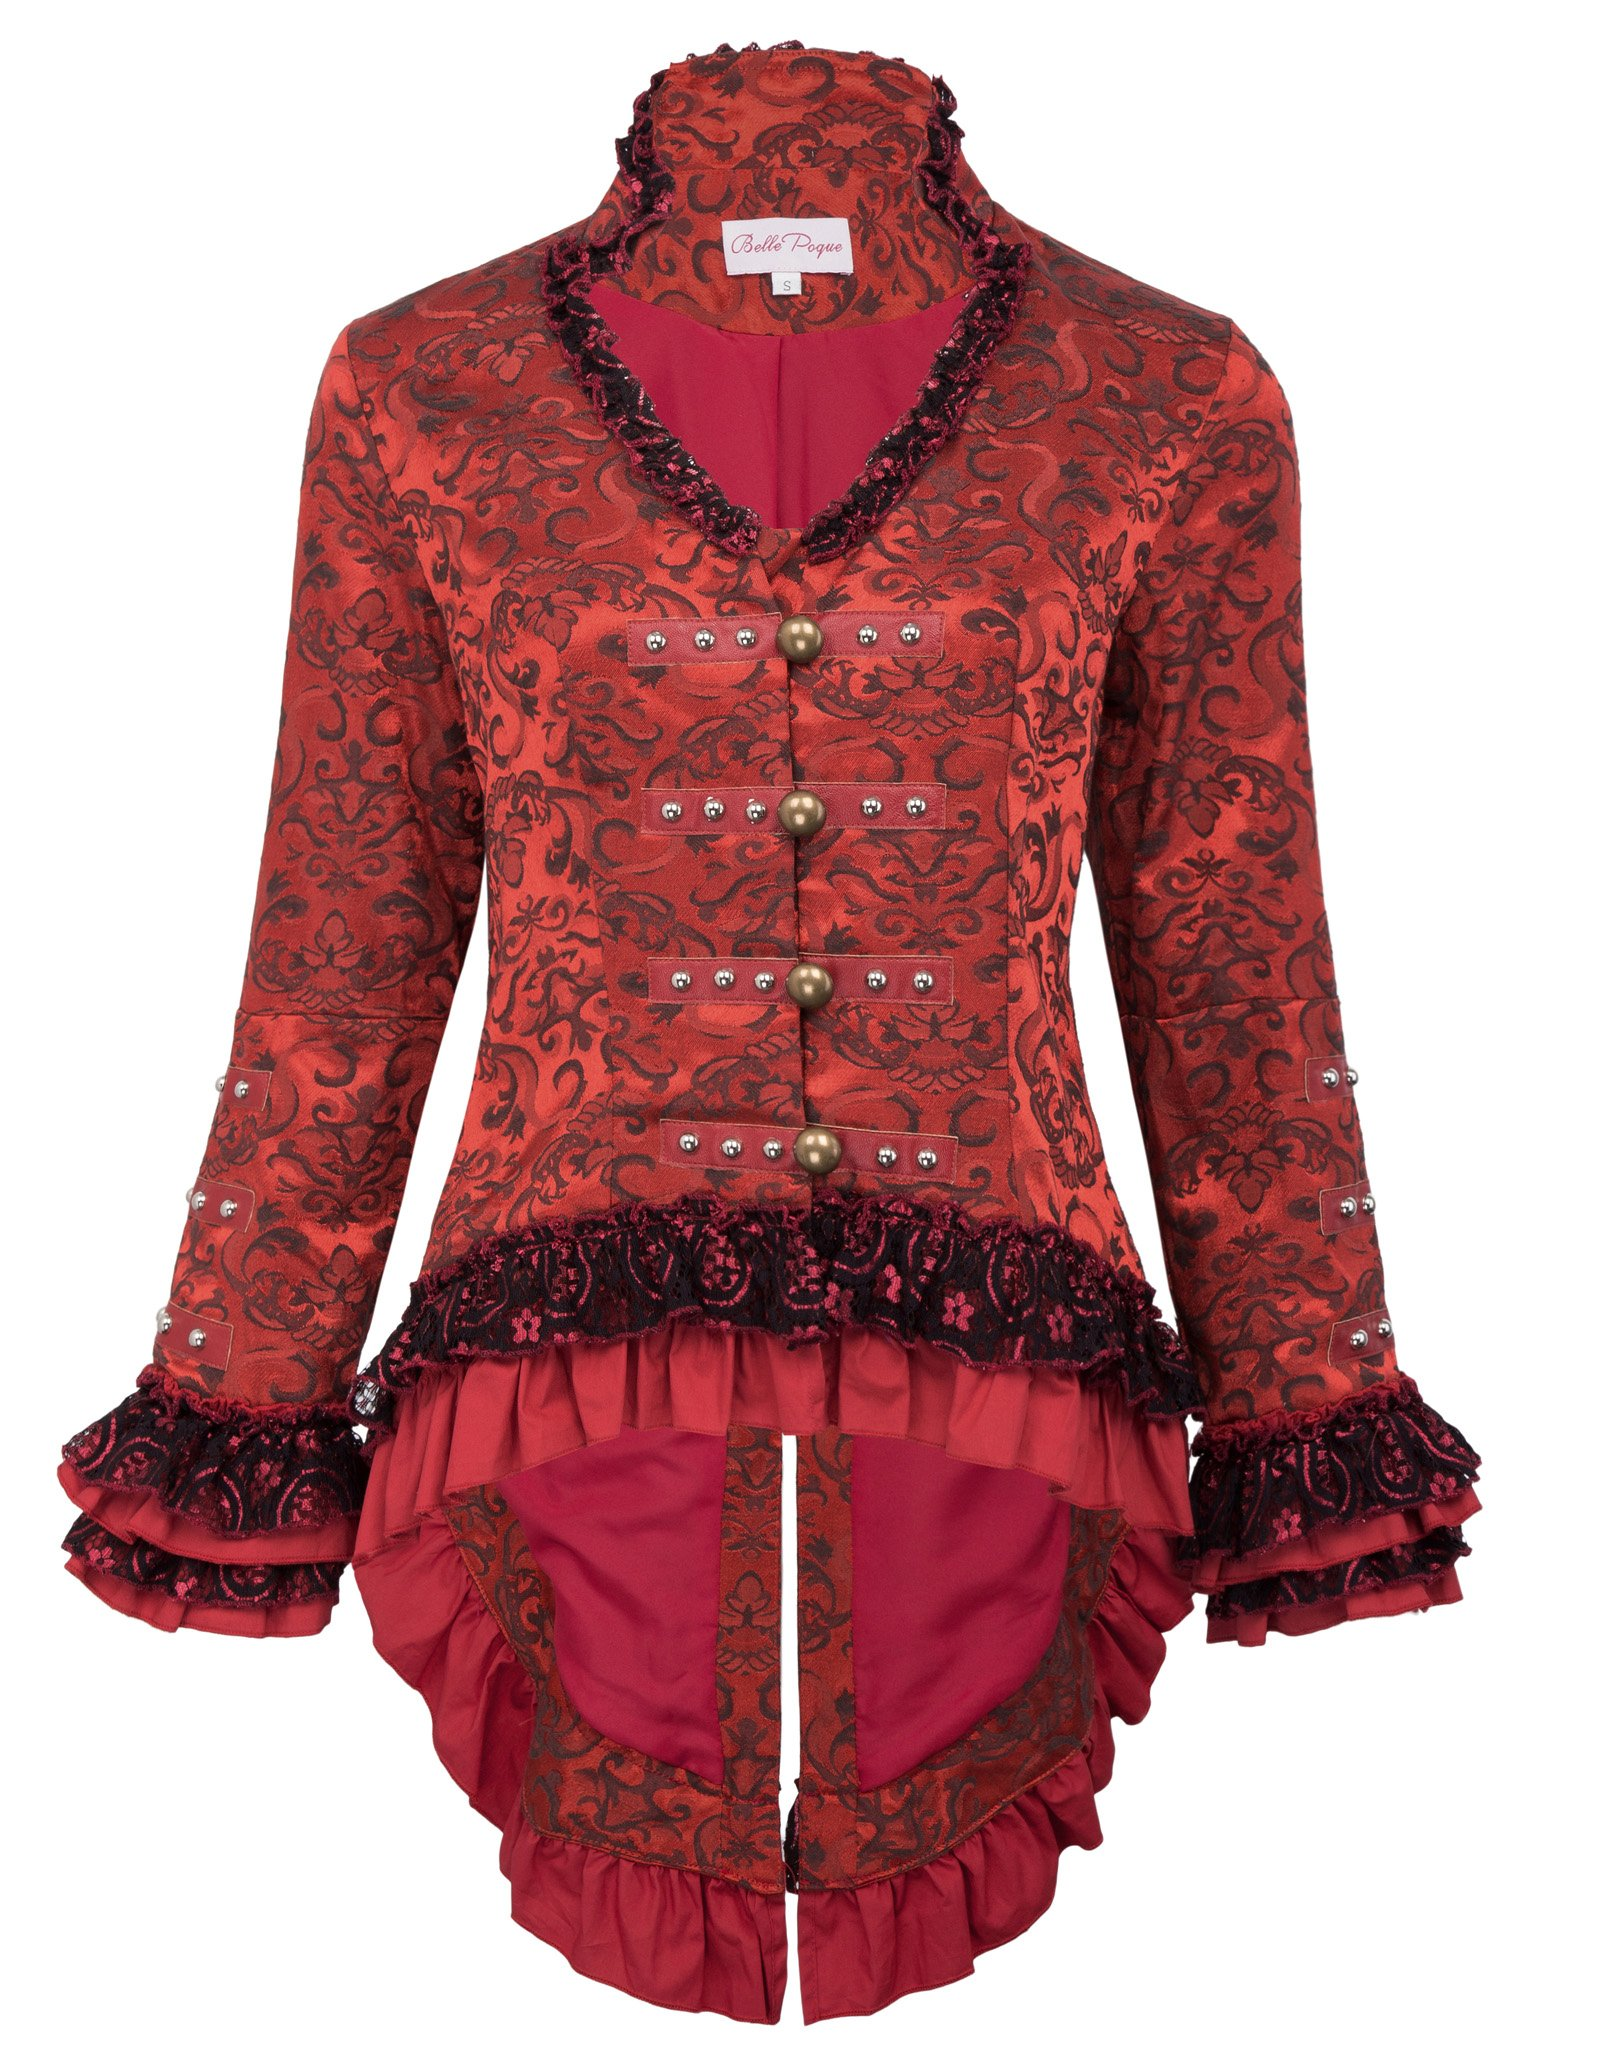 Women's Victorian Steampunk Corset Blazer Jacket with Lacing for Wedding BP223-2 Red Size L